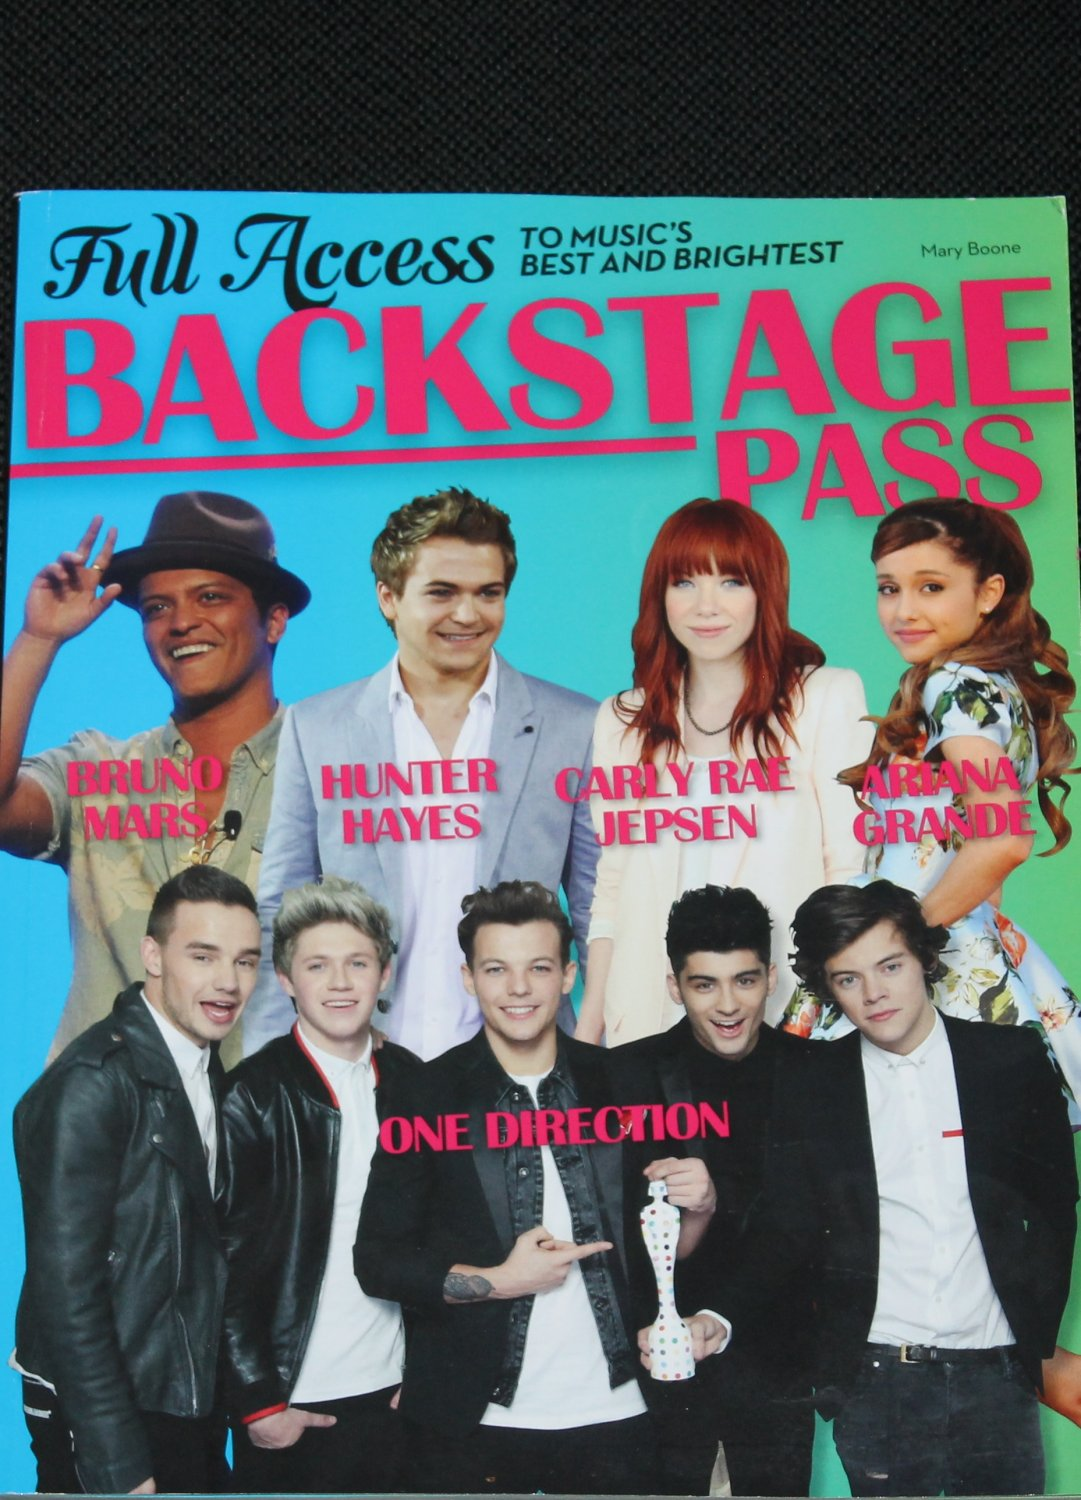 Pass book backstage